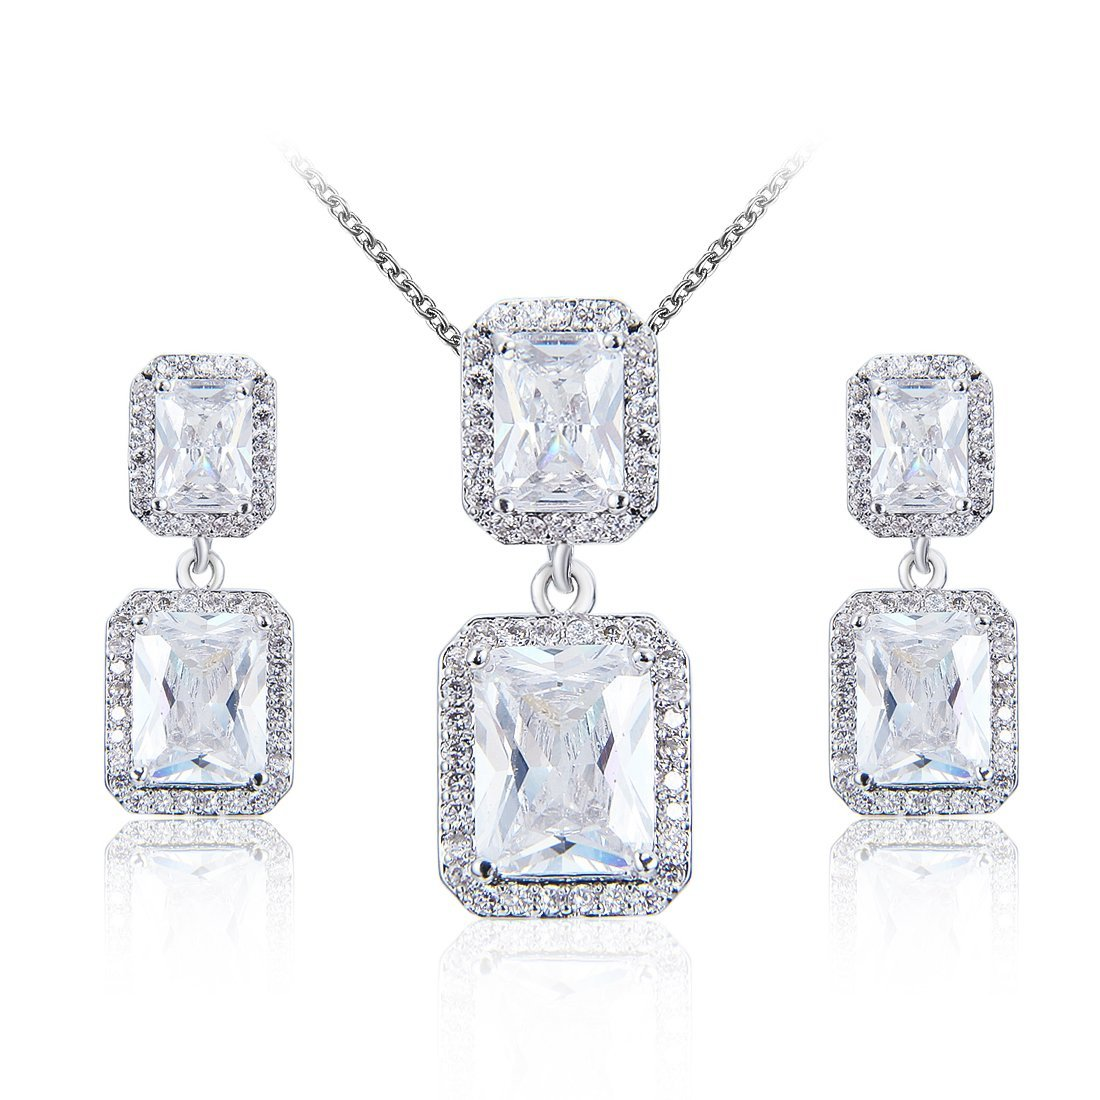 Wordless Love Jewelry Sets for Women Cubic Zirconia Party Earrings Pendant Necklace Set